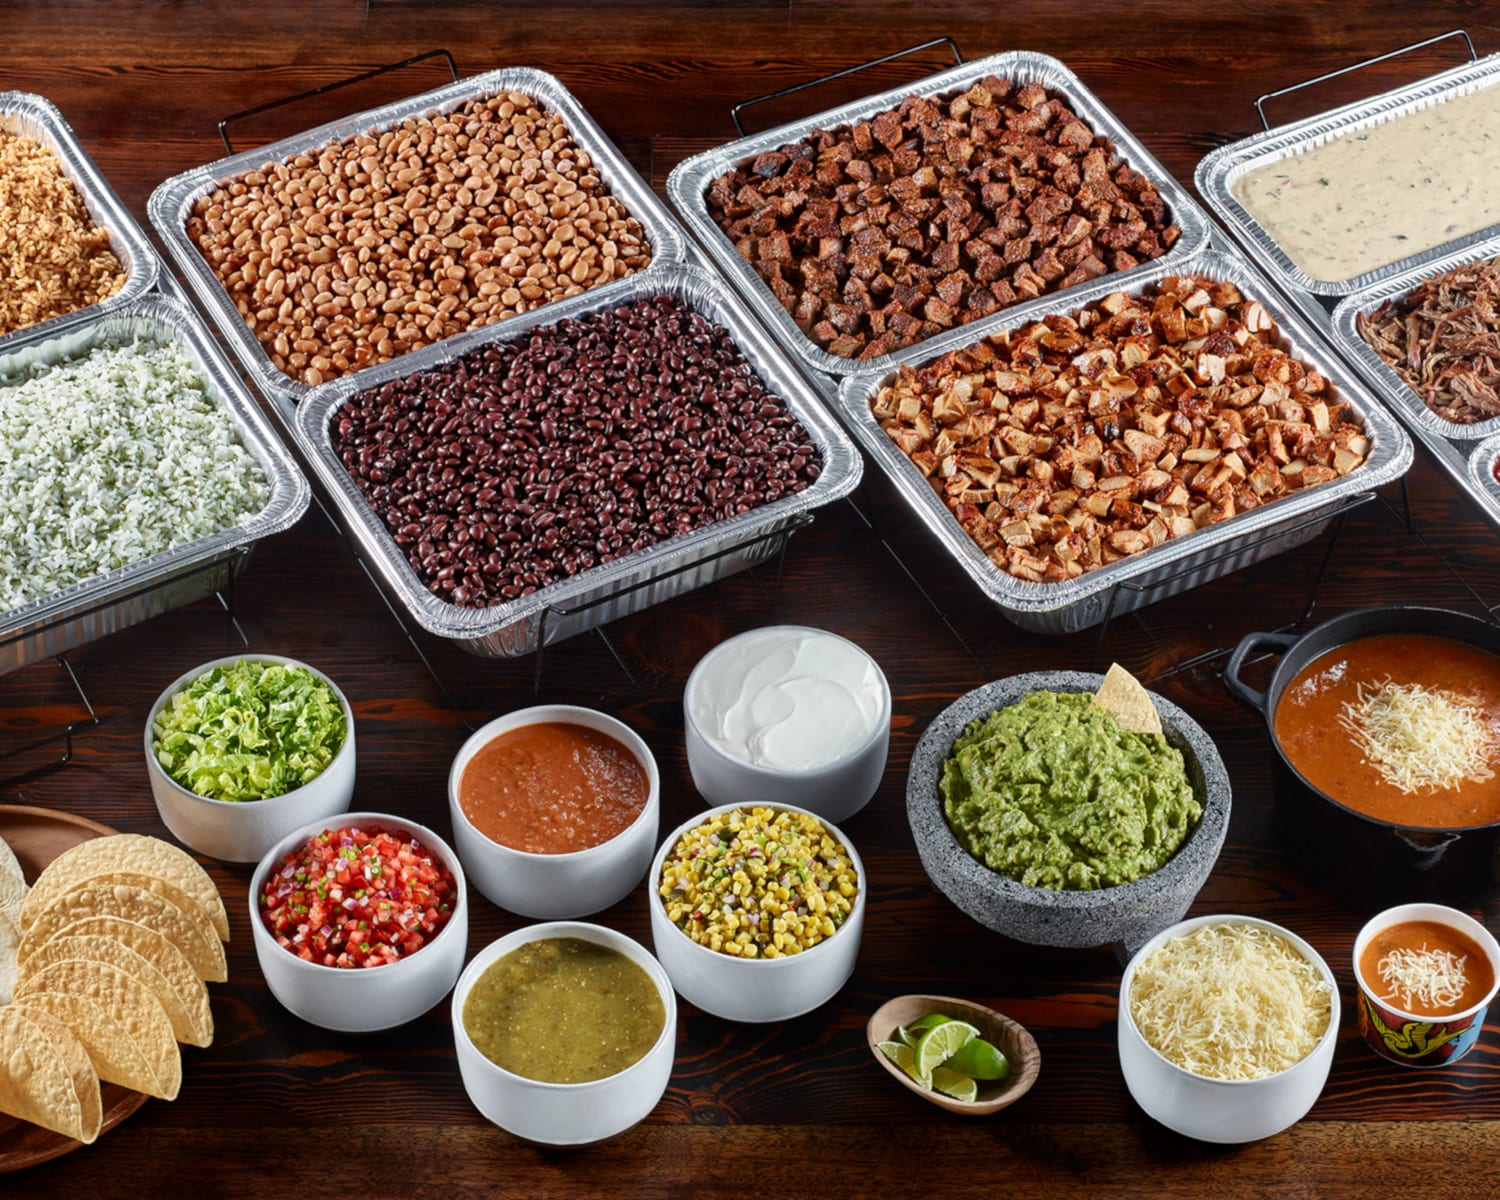 Qdoba Mexican Grill Catering Menu